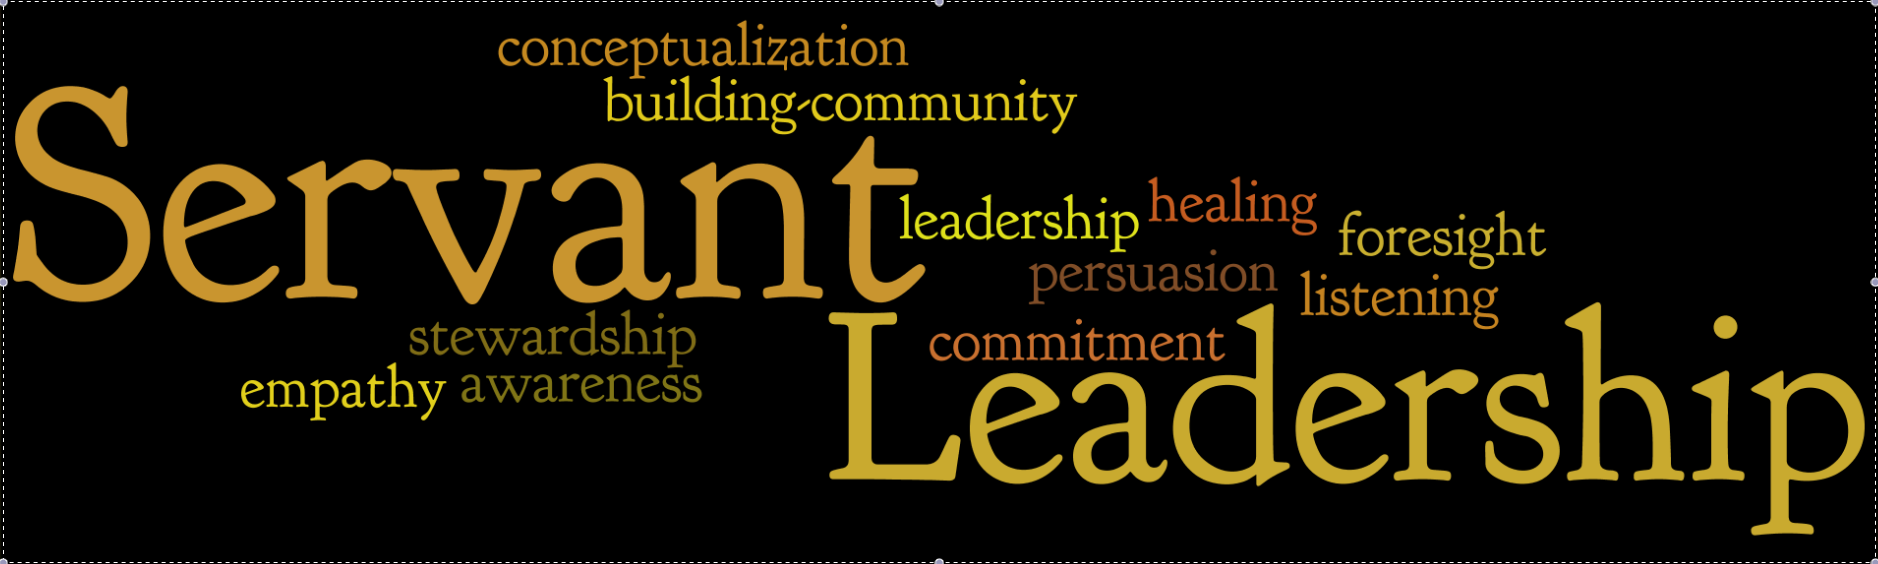 Do you consider yourself a servant leader? - Humphrey Fellows at Cronkite School of Journalism and Mass Communication - ASU